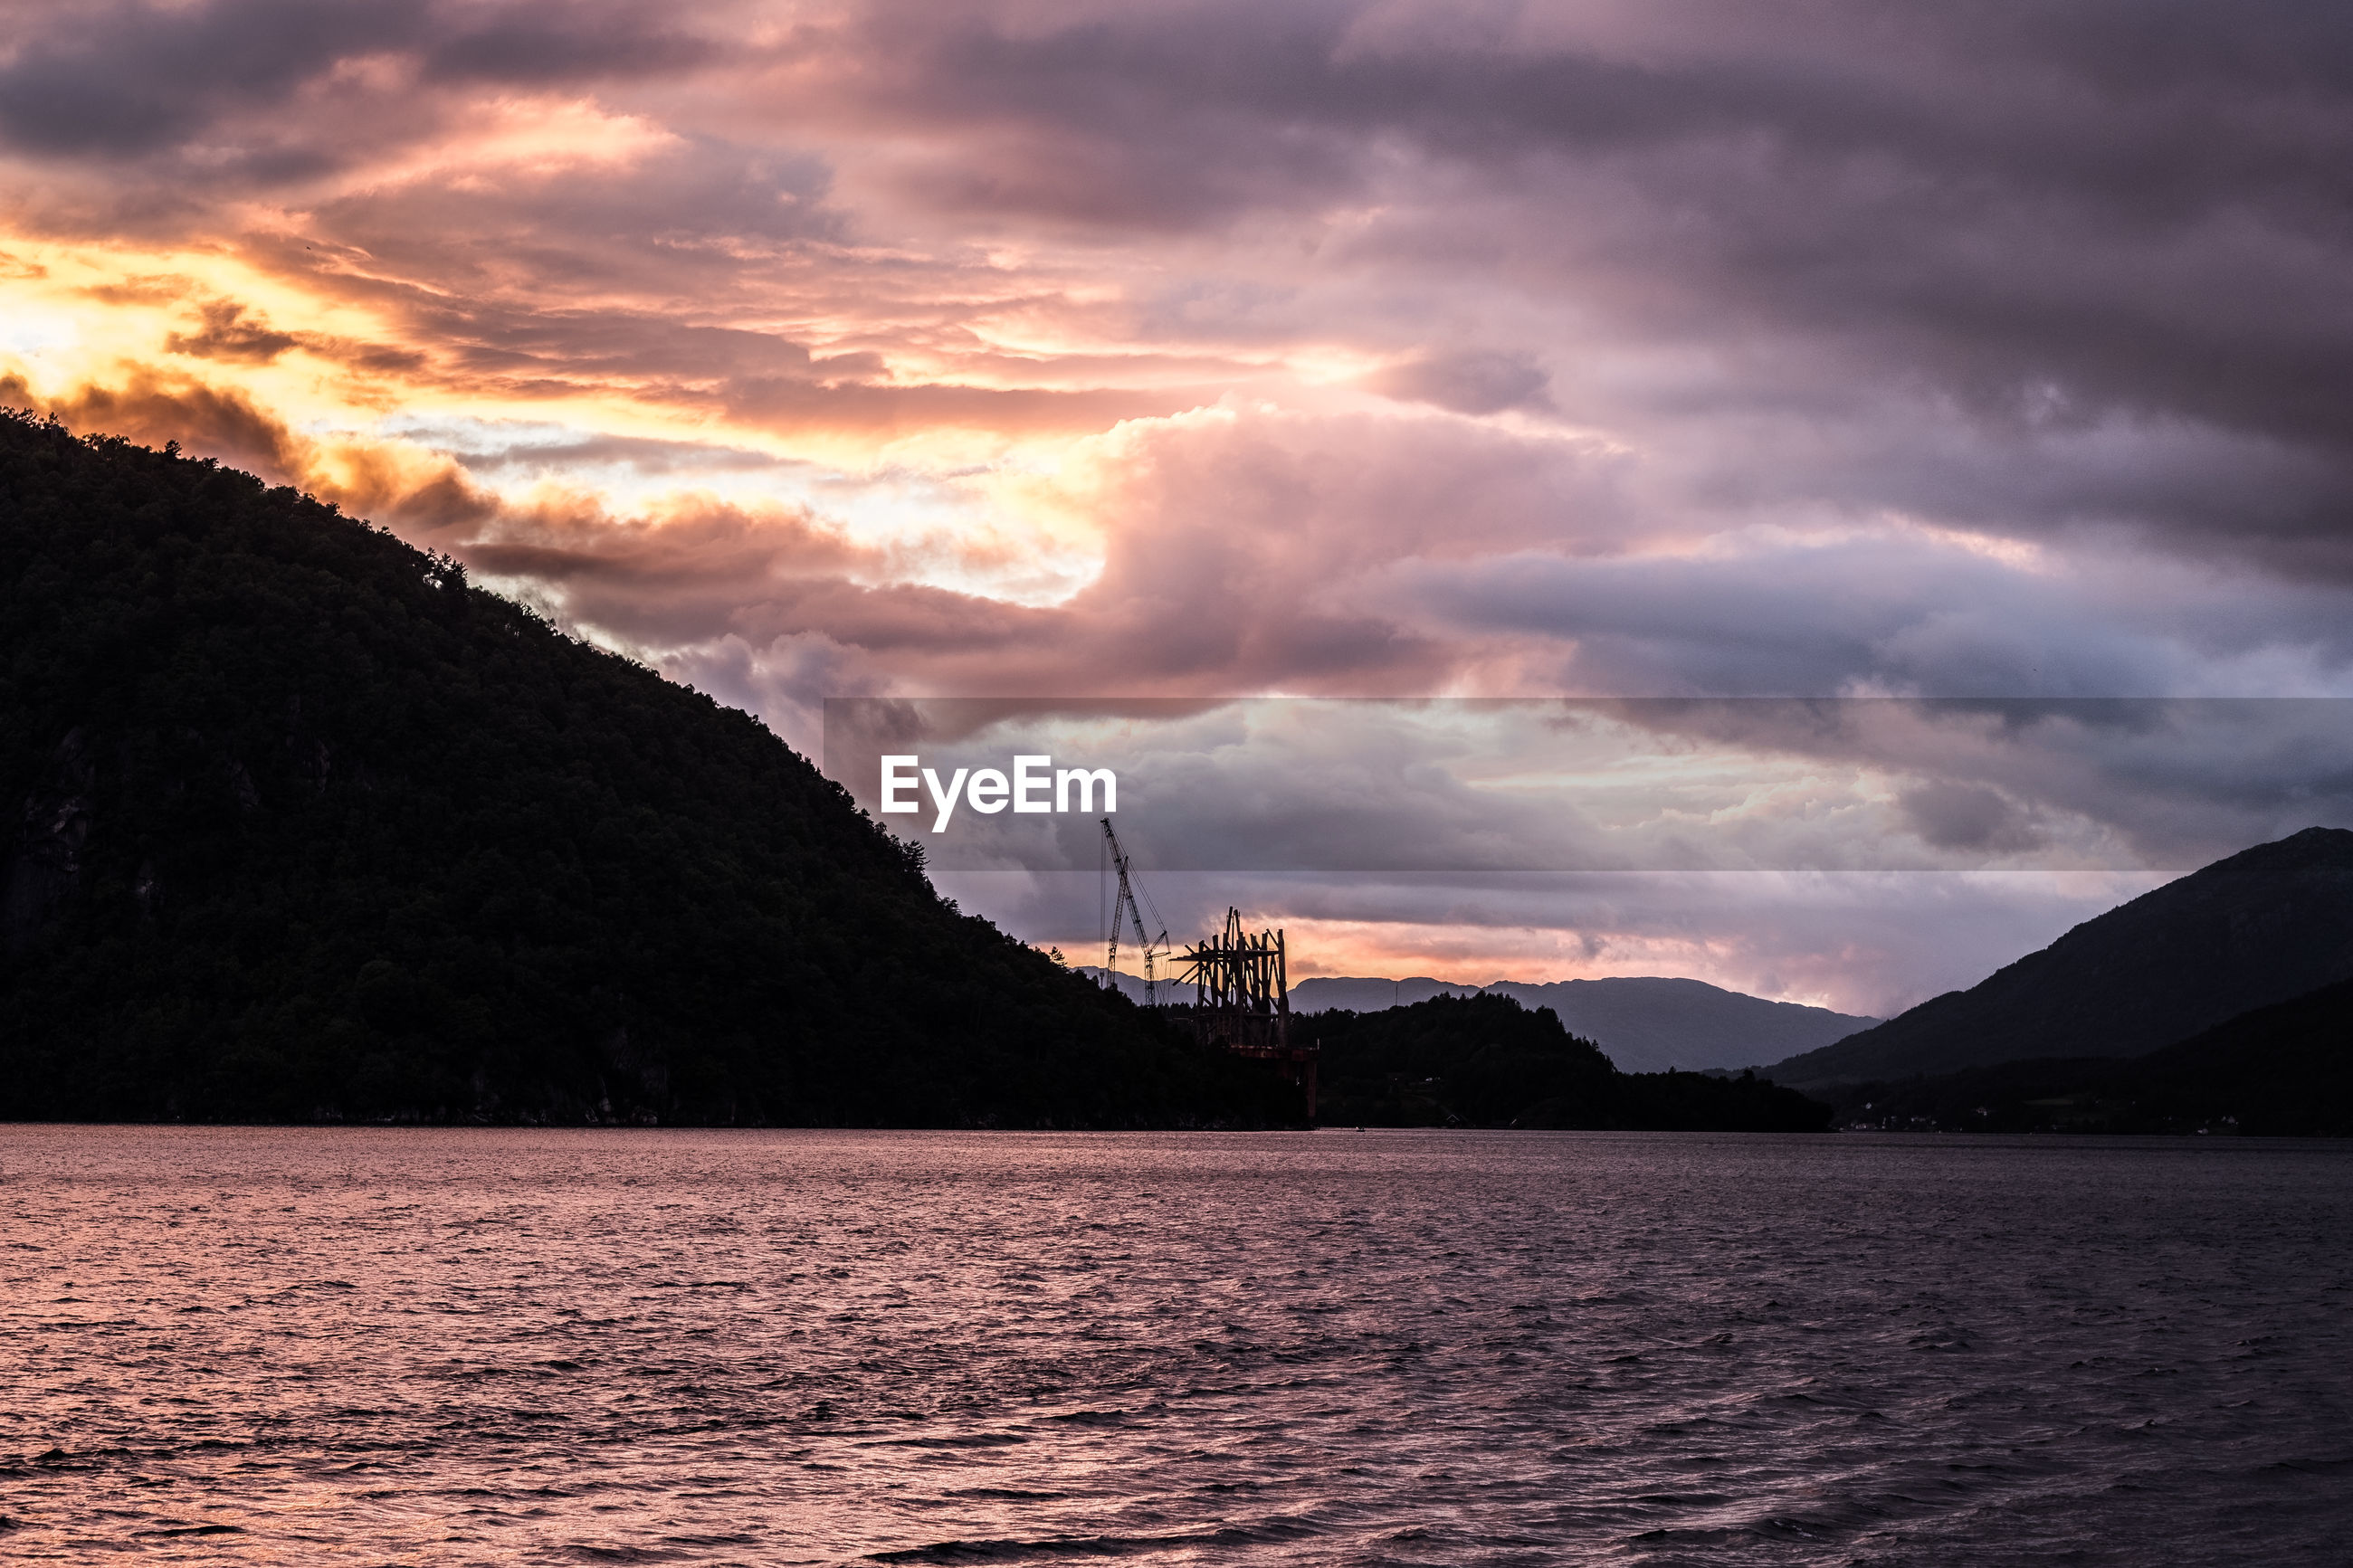 SCENIC VIEW OF DRAMATIC SKY OVER SEA AND MOUNTAINS